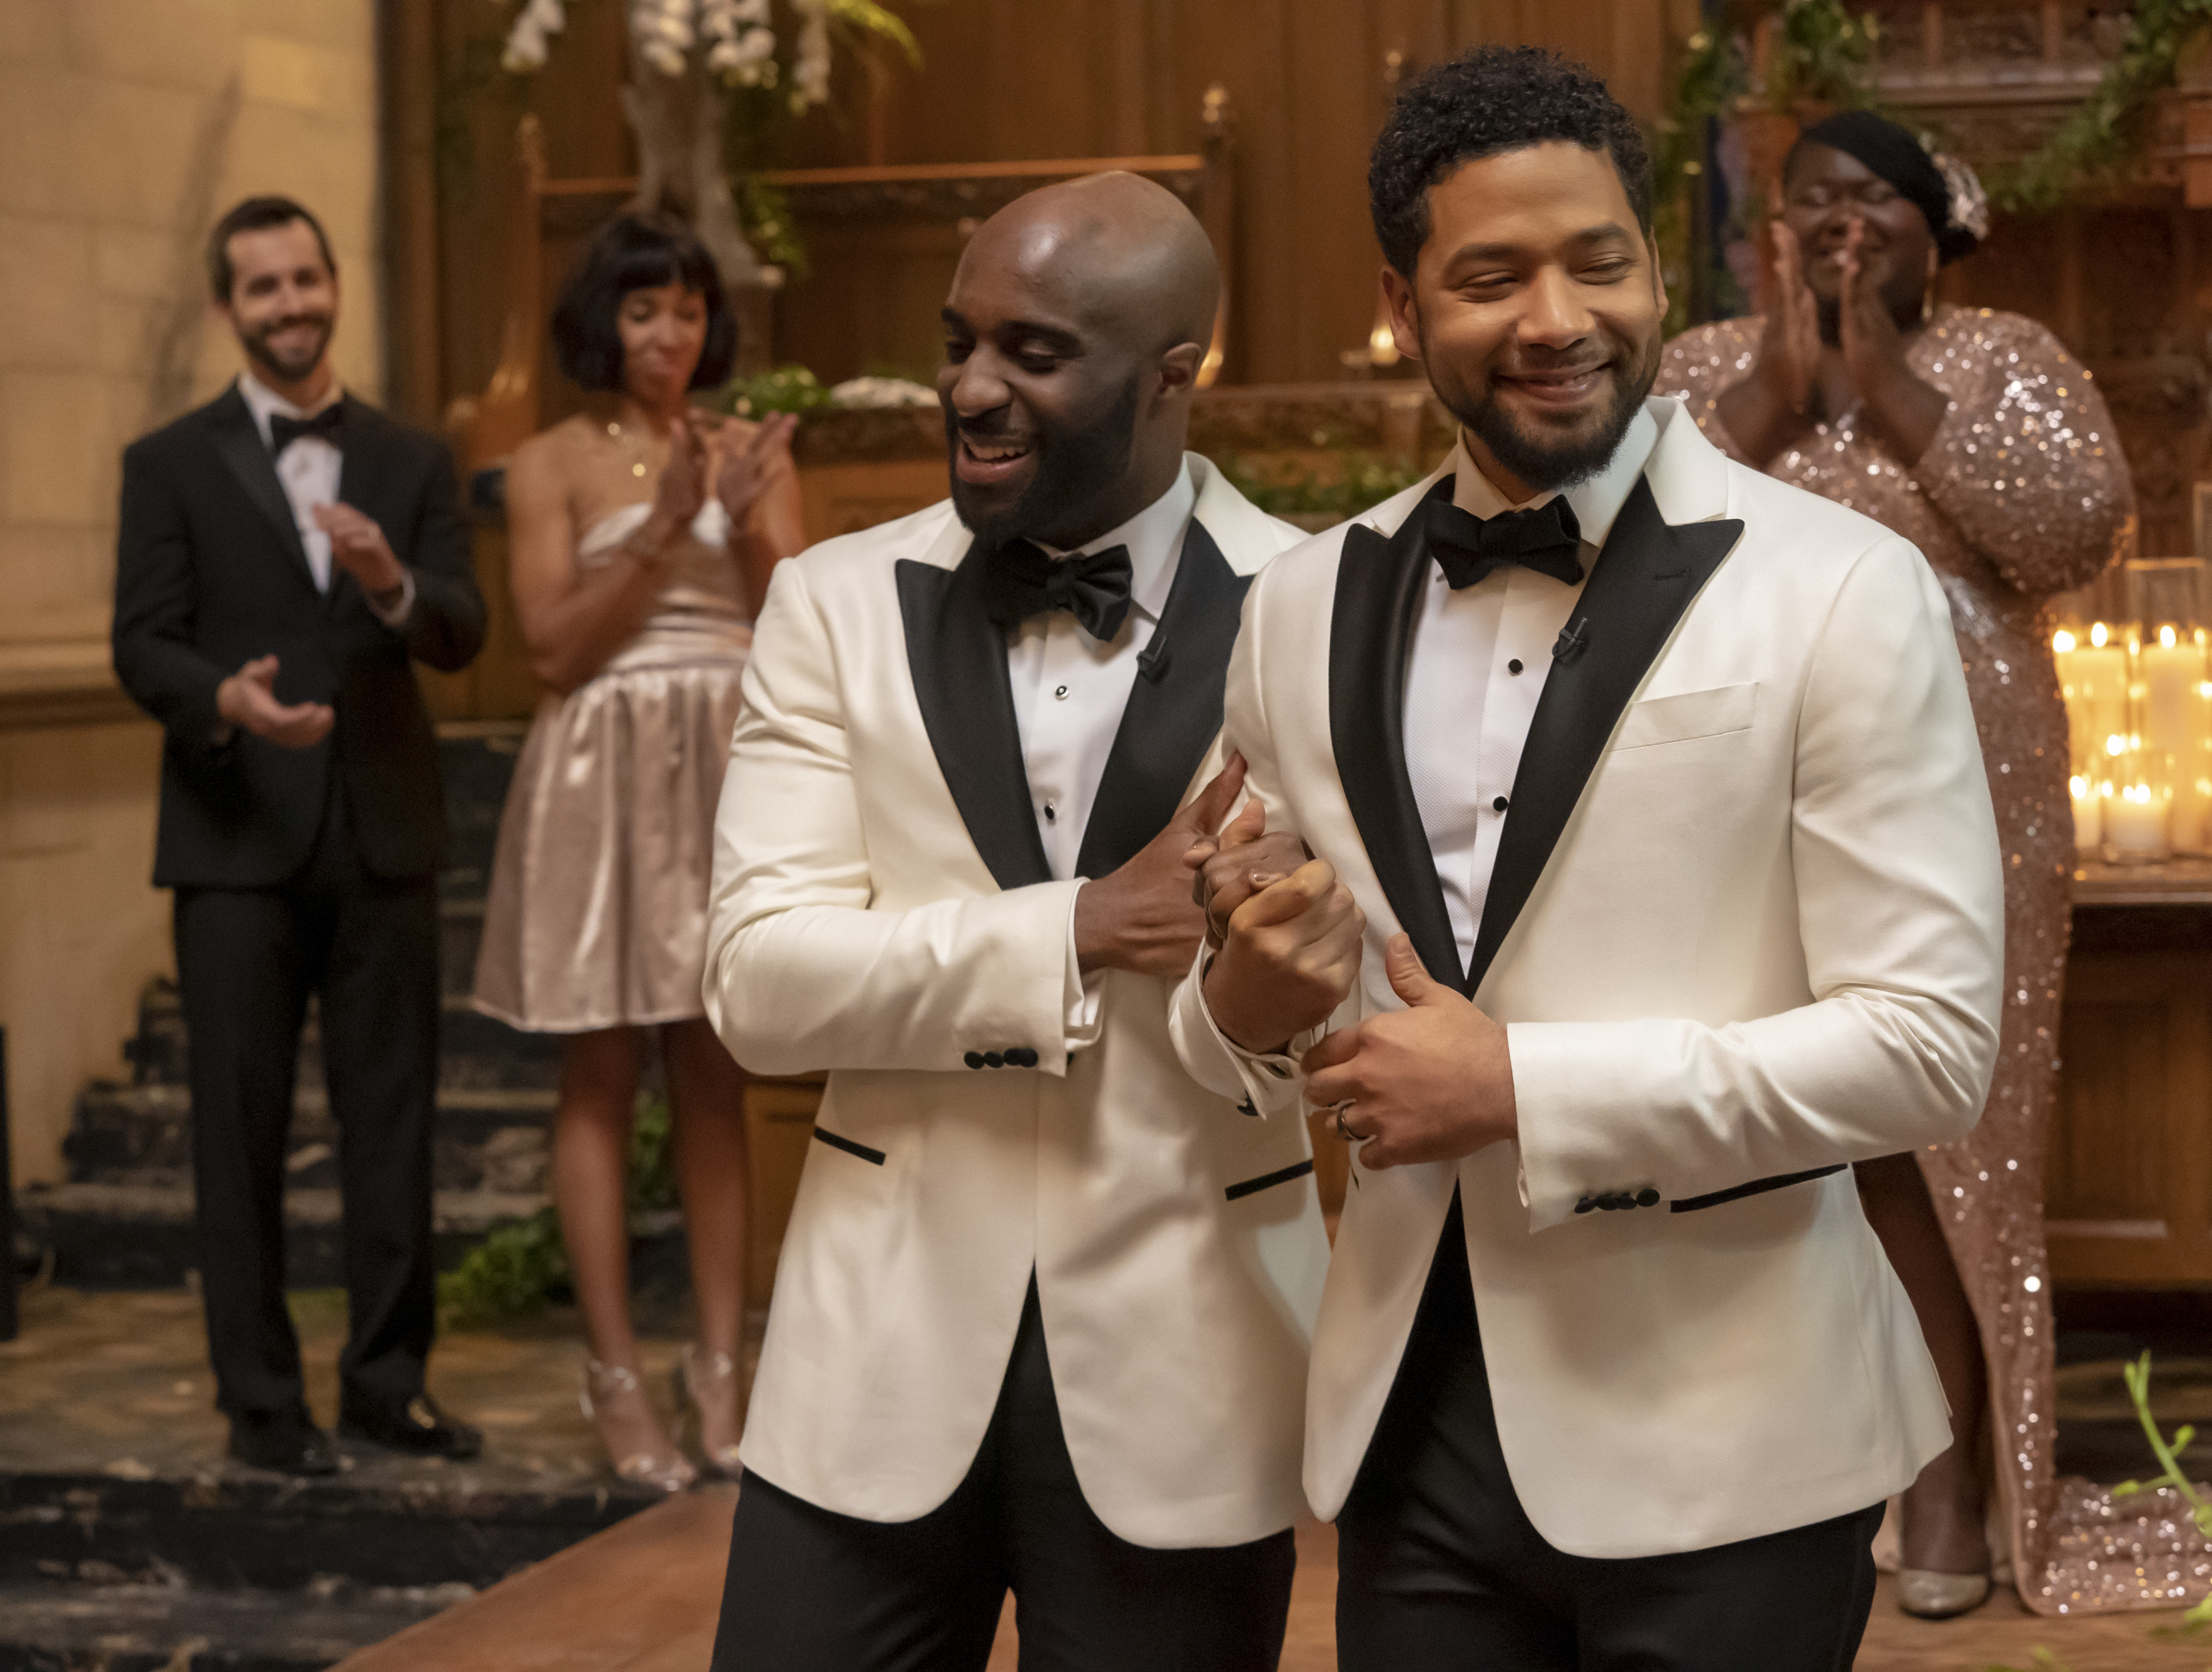 Best bets for April 24: Smollett's moving farewell